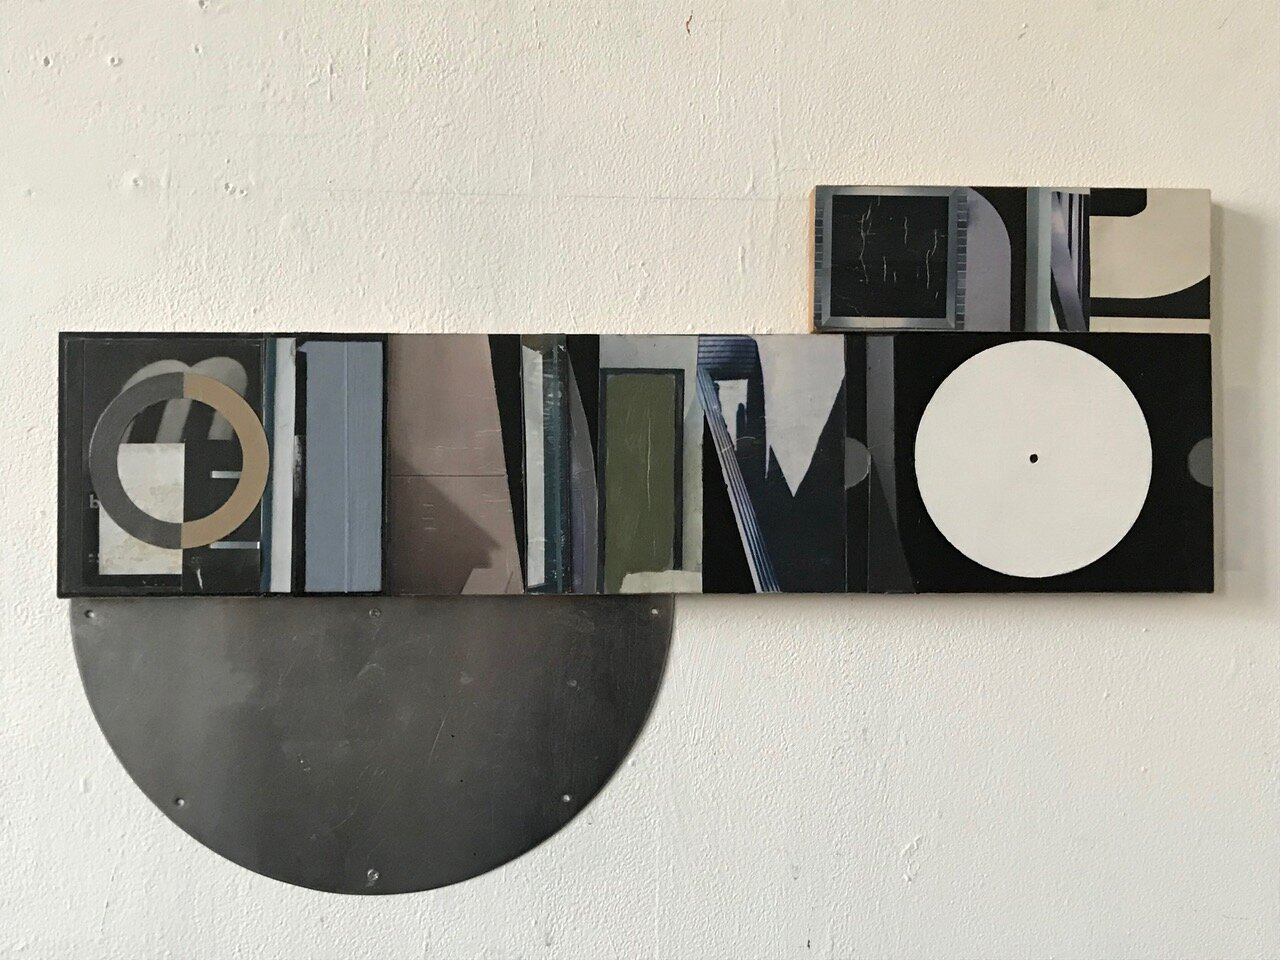 Laurence Noga,  Soft, white floating silver,  2016 Acrylic, collage and steel in three parts, 45x72cm. Image courtesy of the artist.